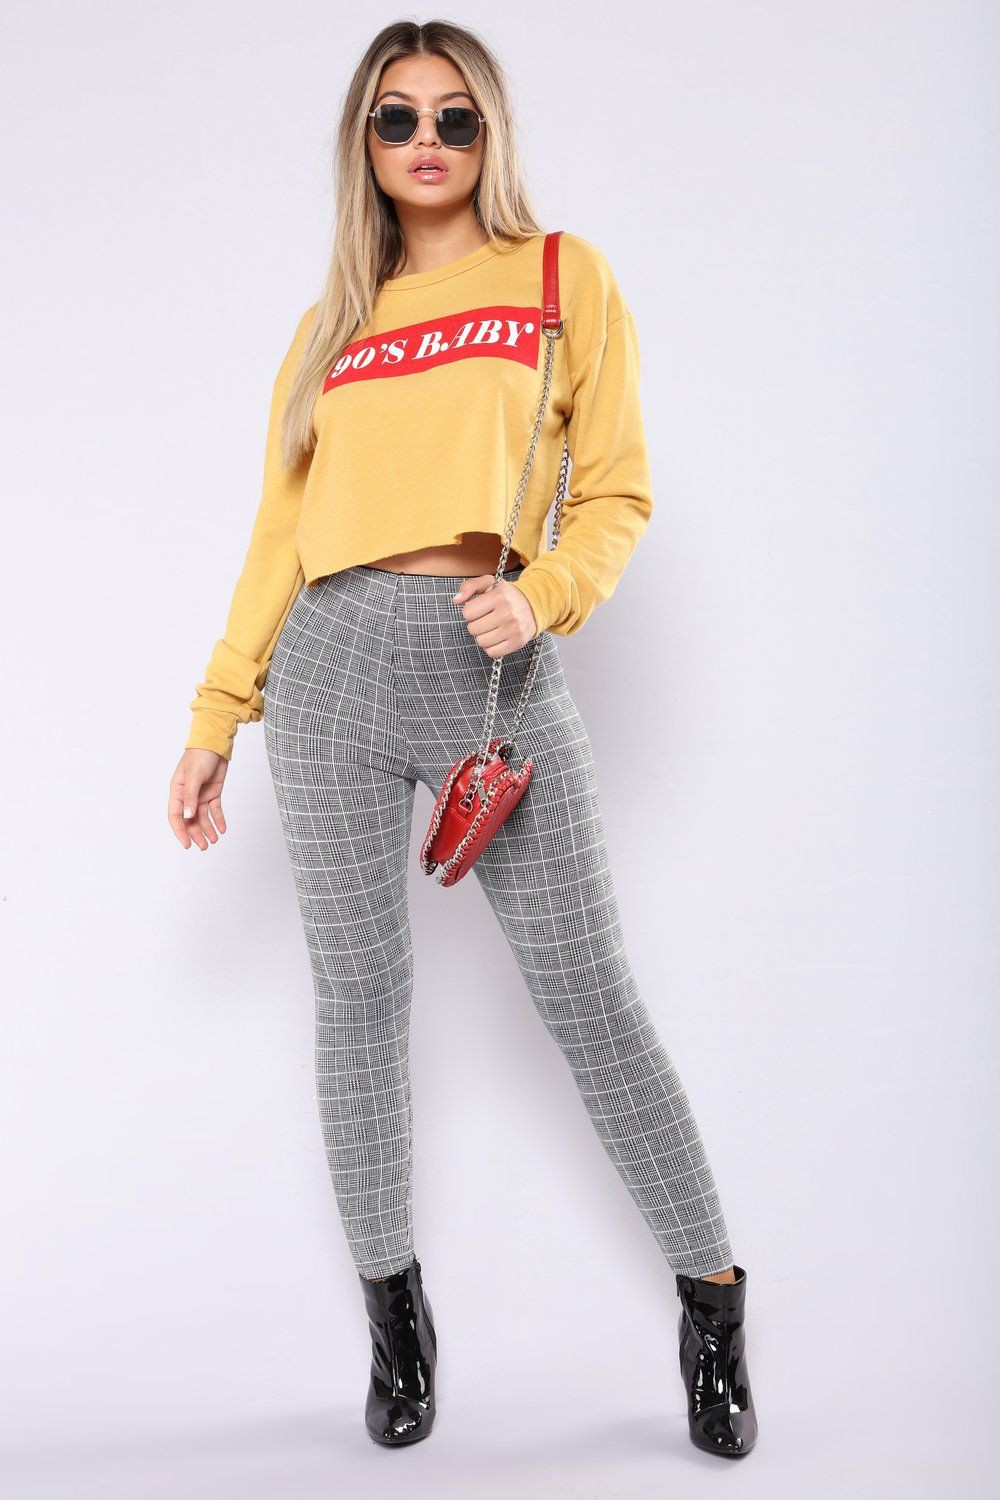 Cute outfits with plaid leggings